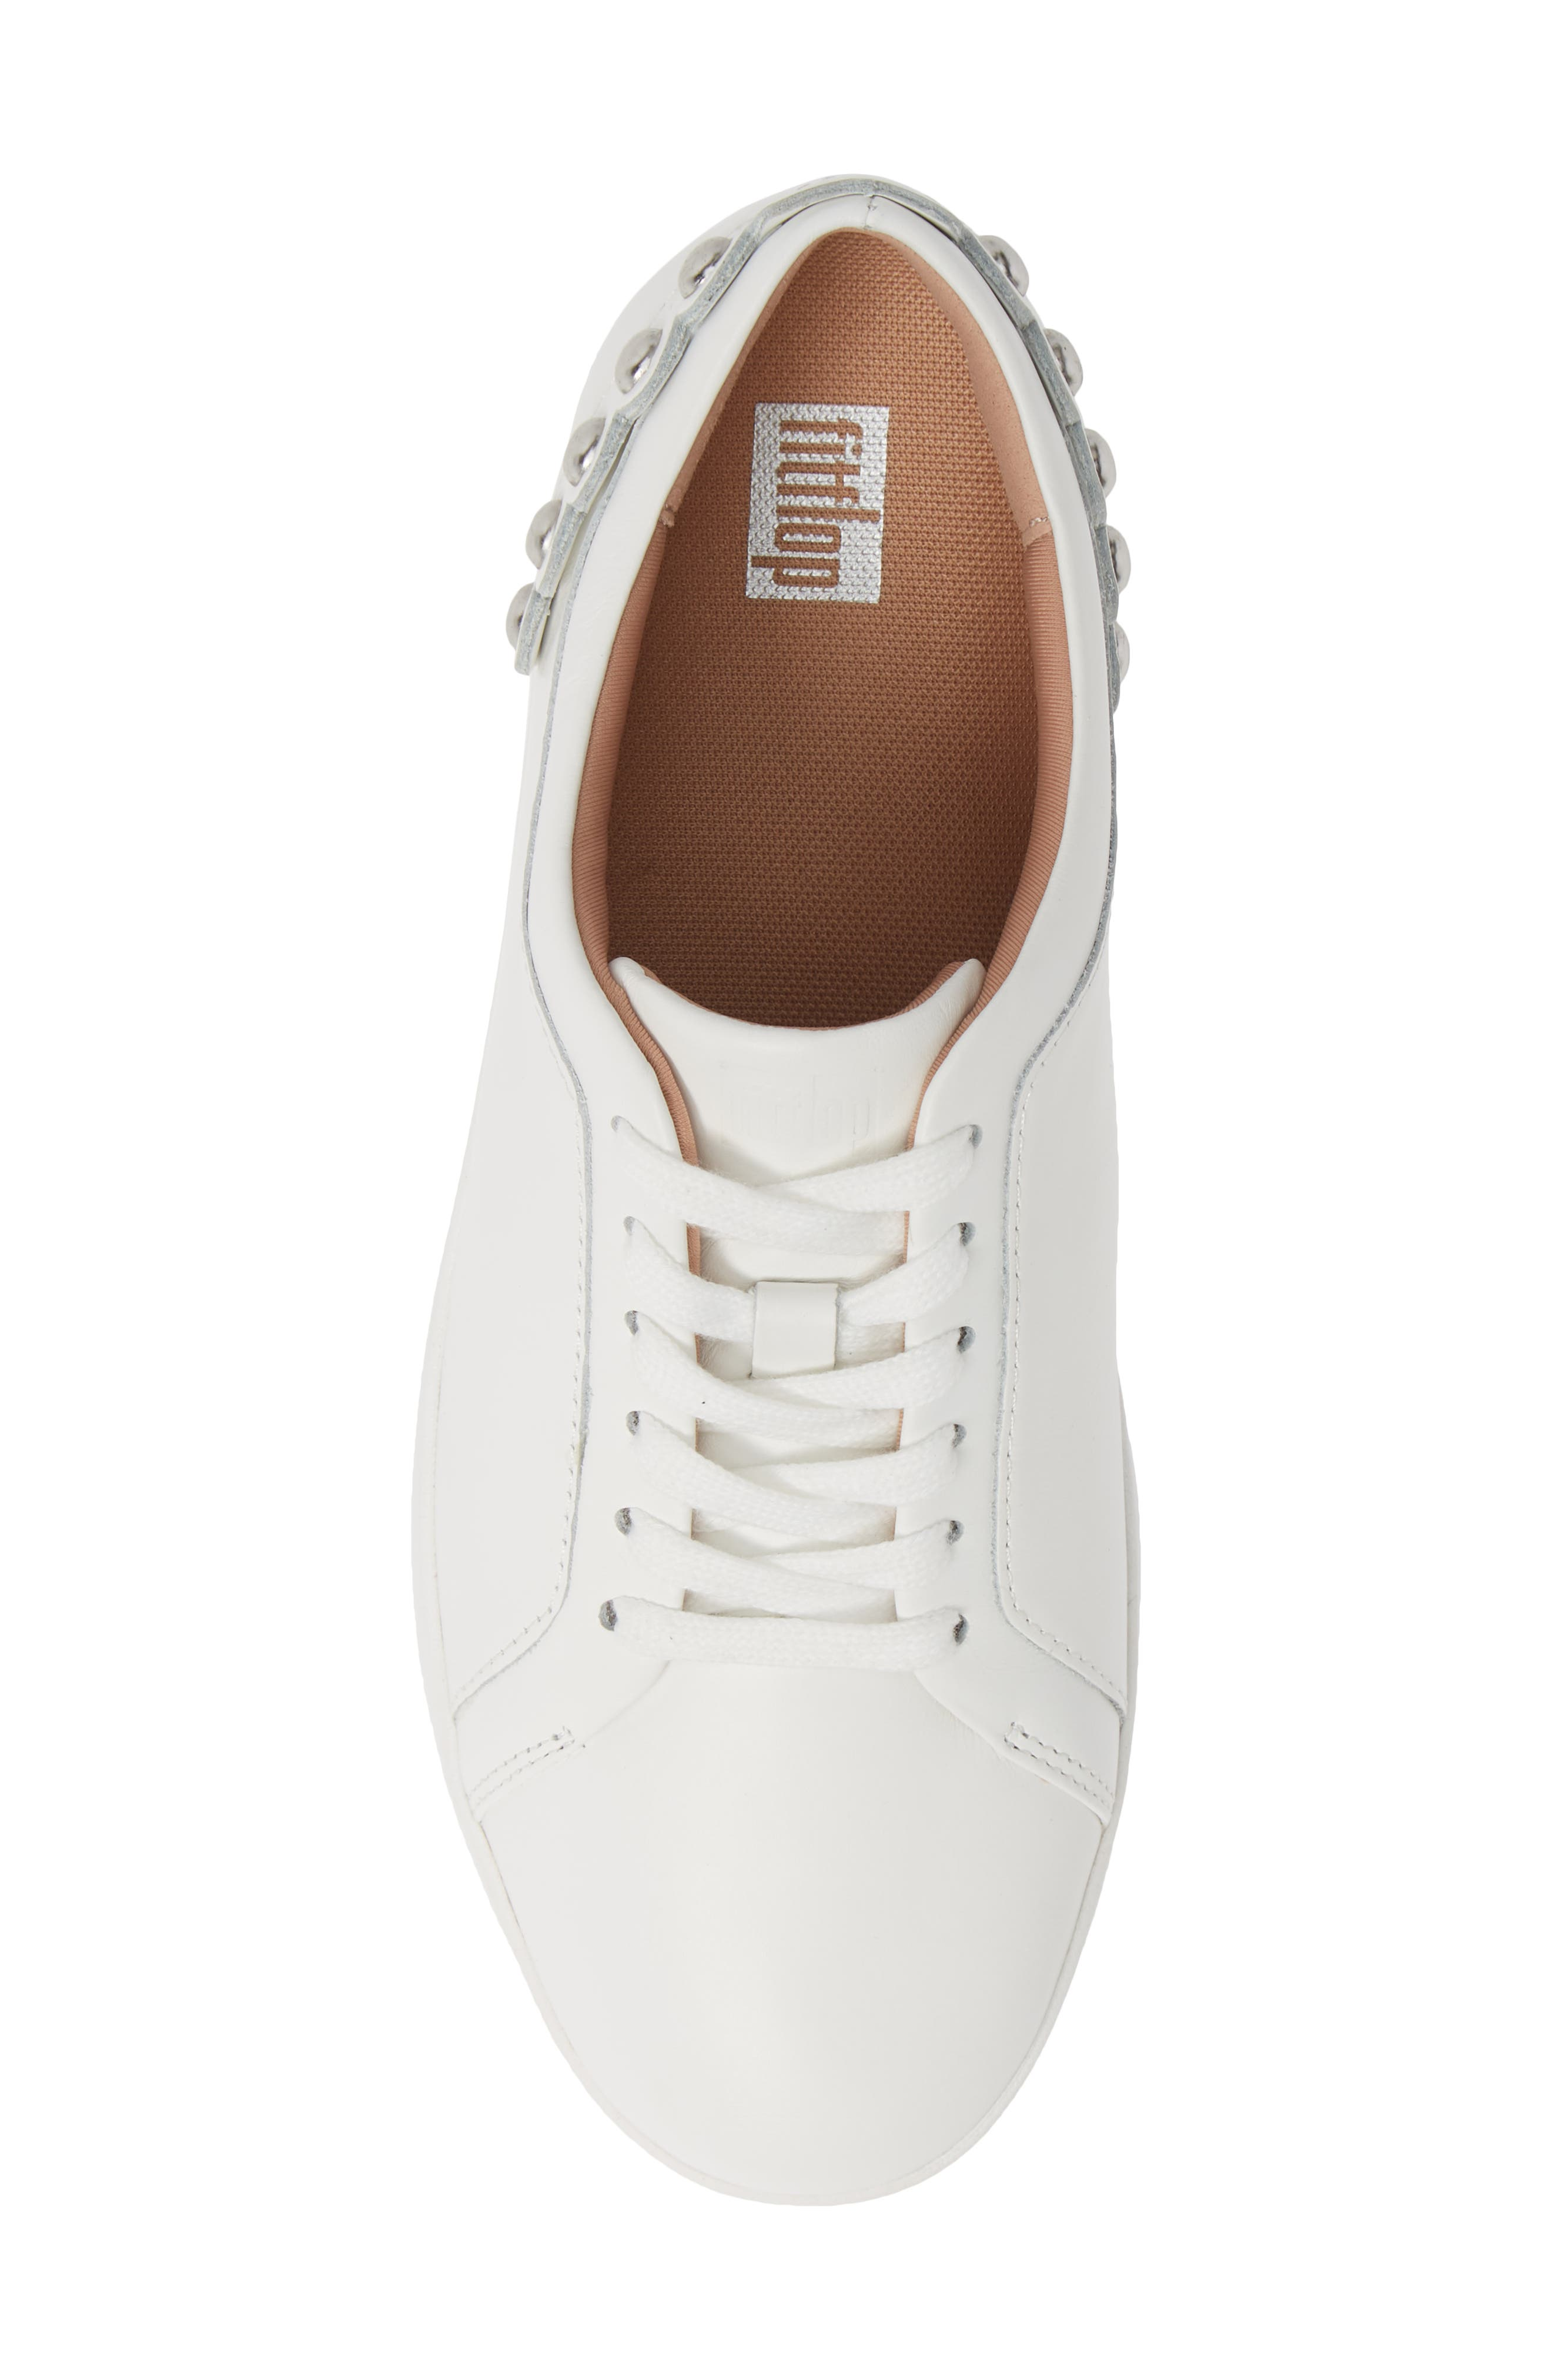 FITFLOP, Rally Studded Sneaker, Alternate thumbnail 5, color, URBAN WHITE LEATHER